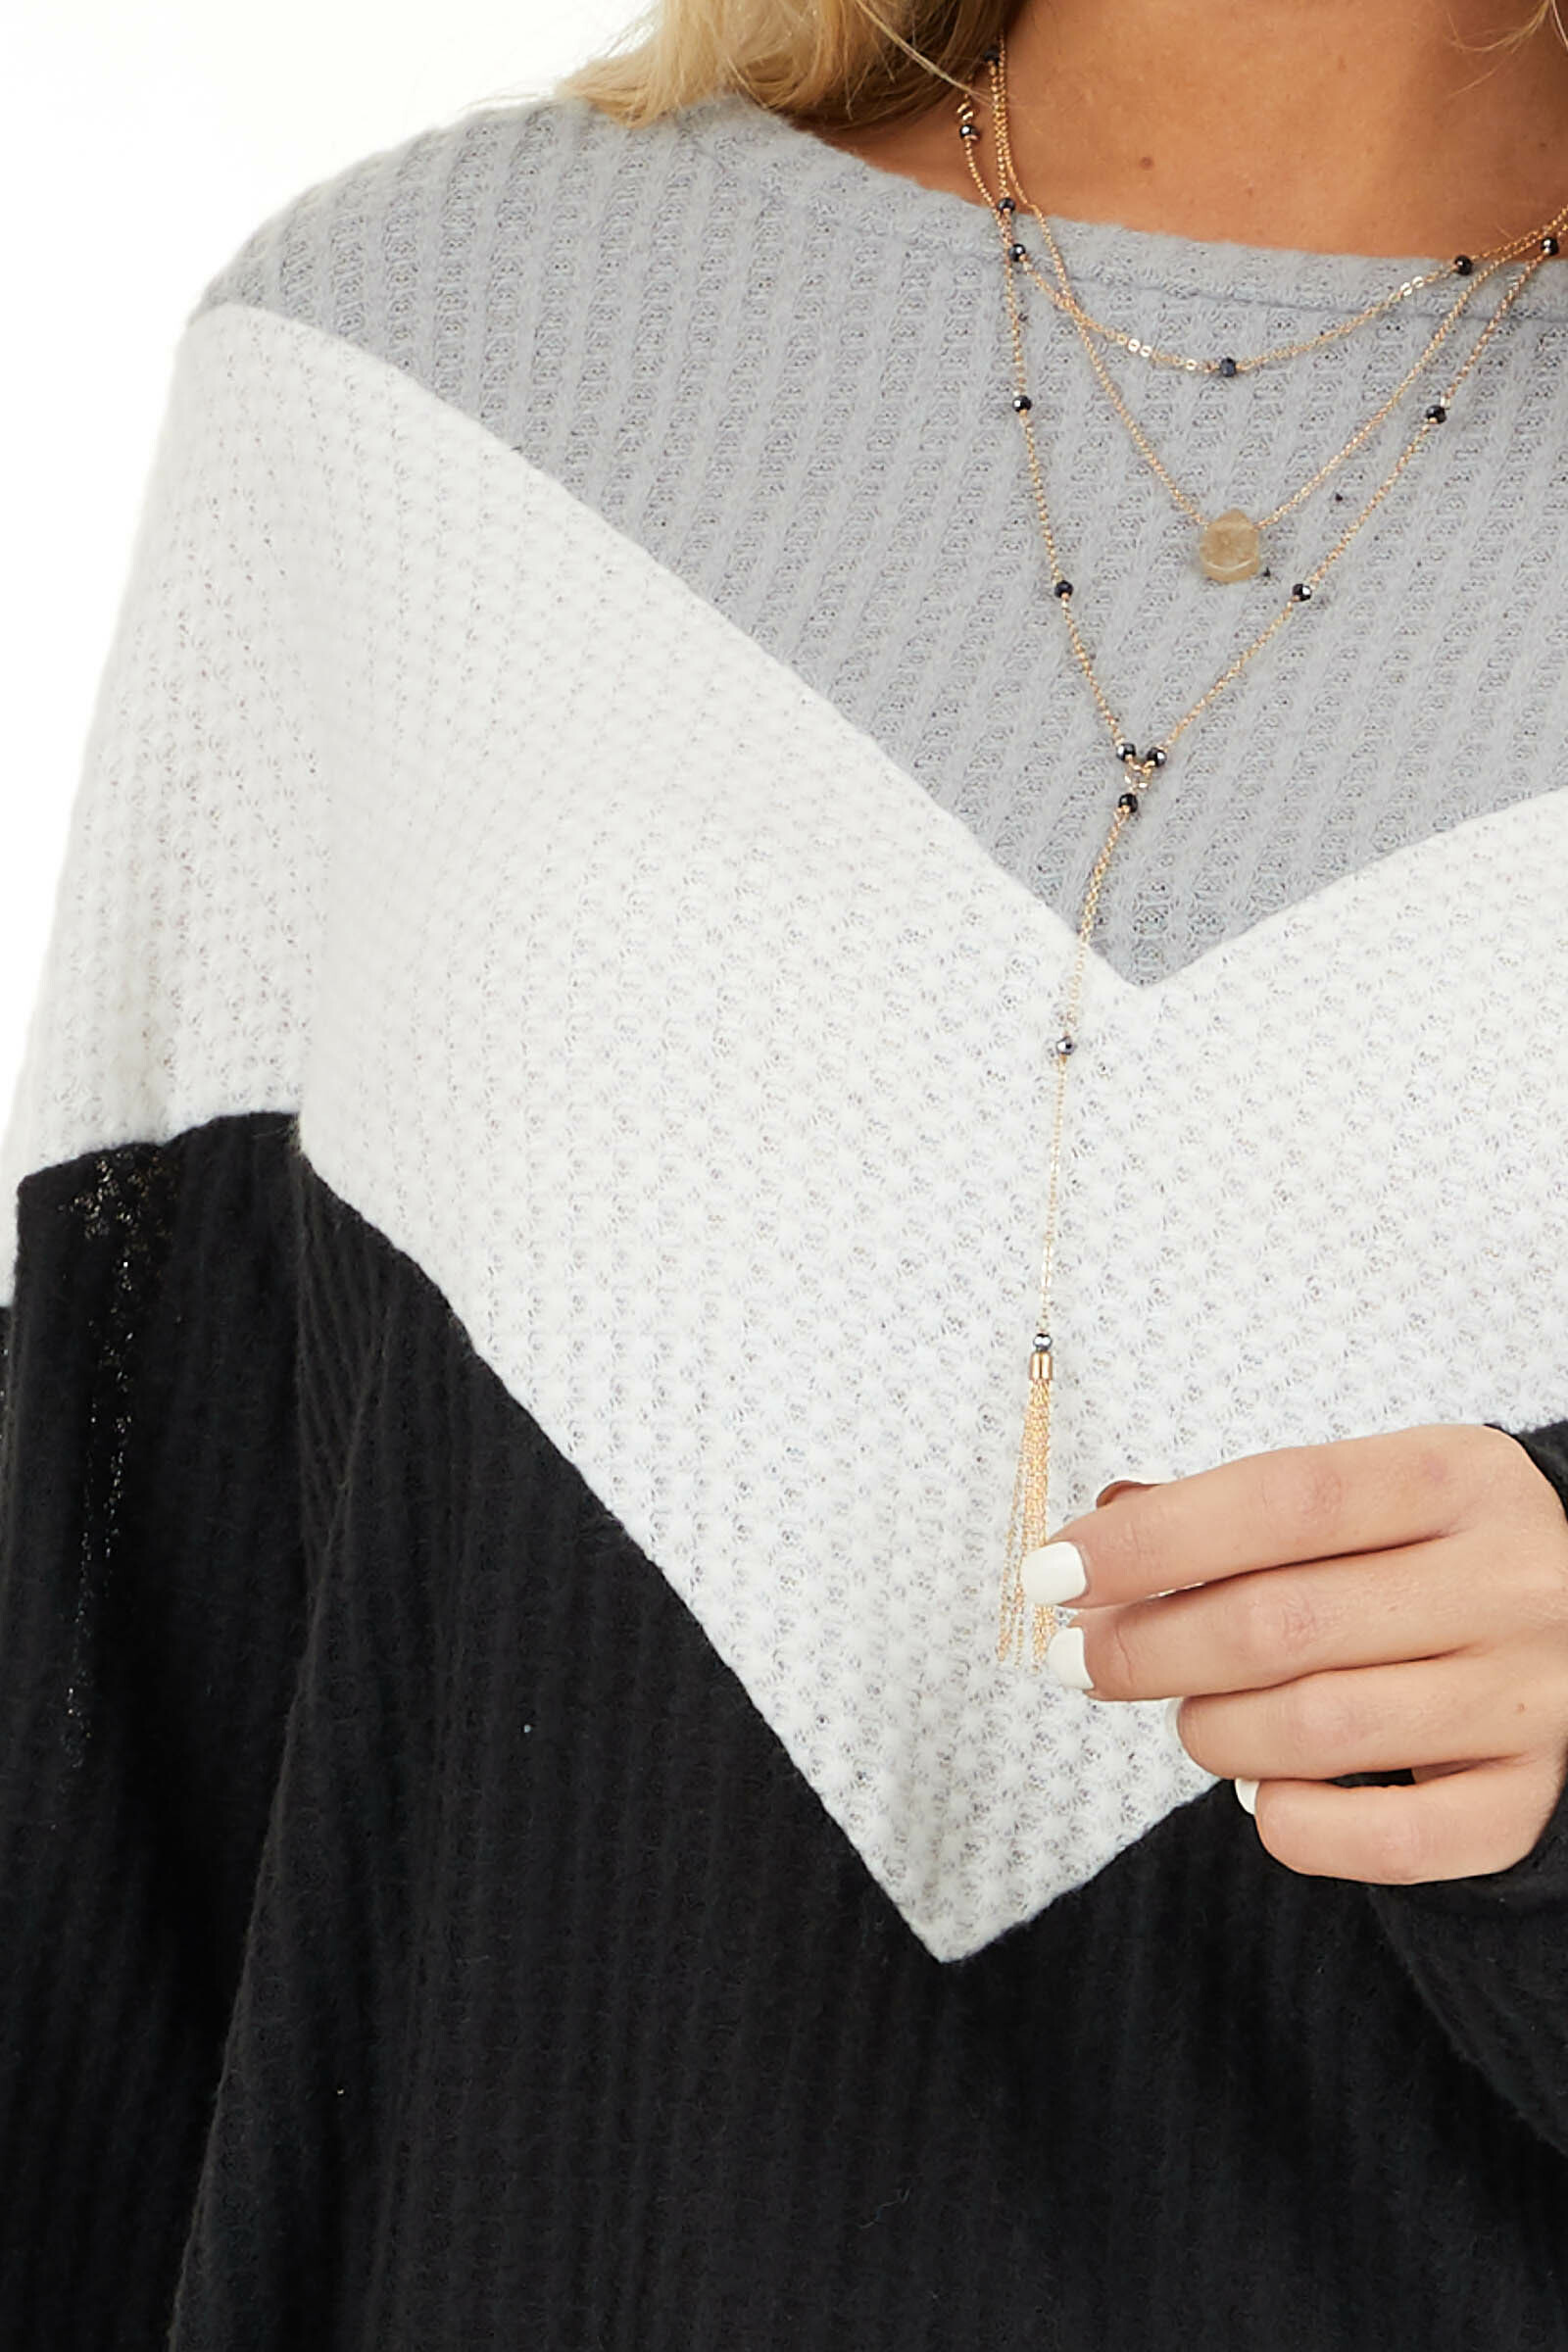 Black Ivory and Heather Grey Color Block Waffle Knit Top detail